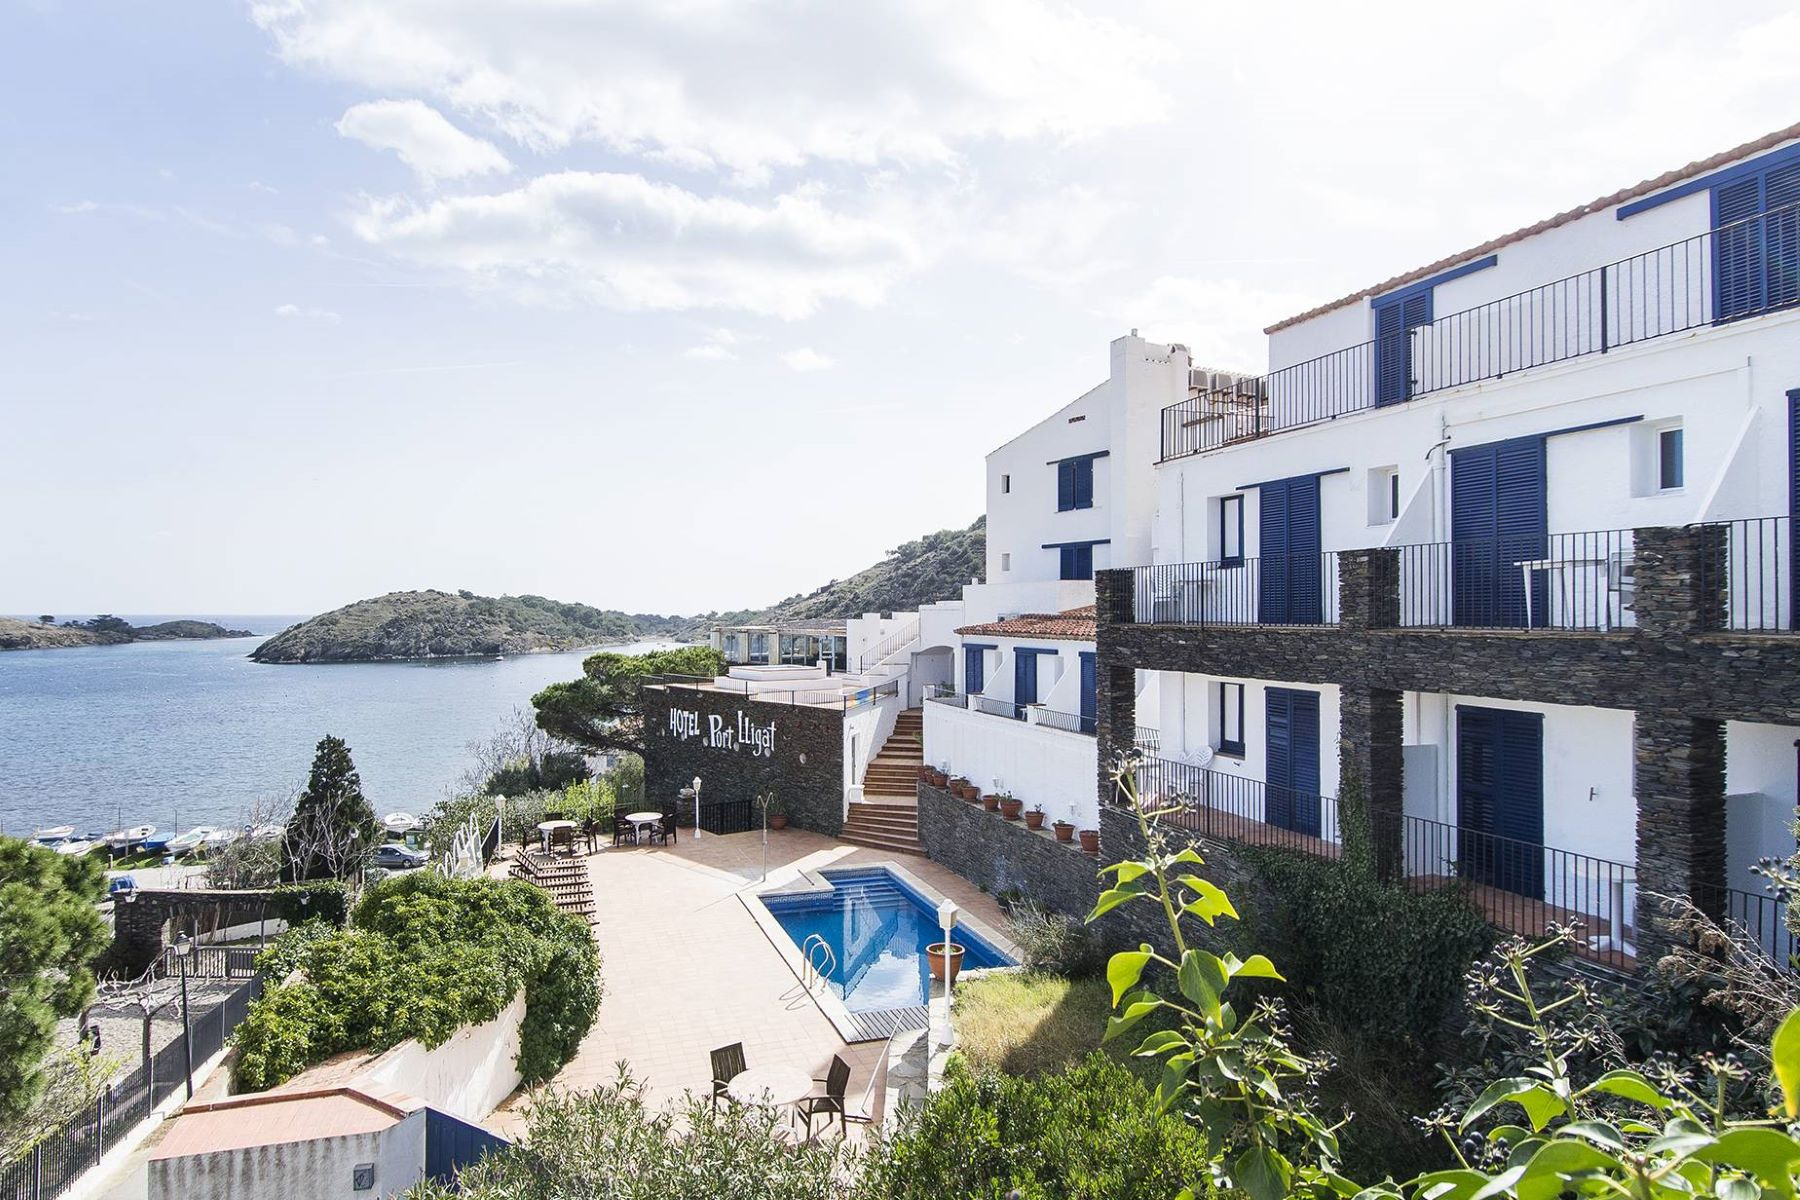 Single Family Home for Sale at Beautiful hotel at the foot of the beach in Cadaques Cadaques, Costa Brava 17488 Spain